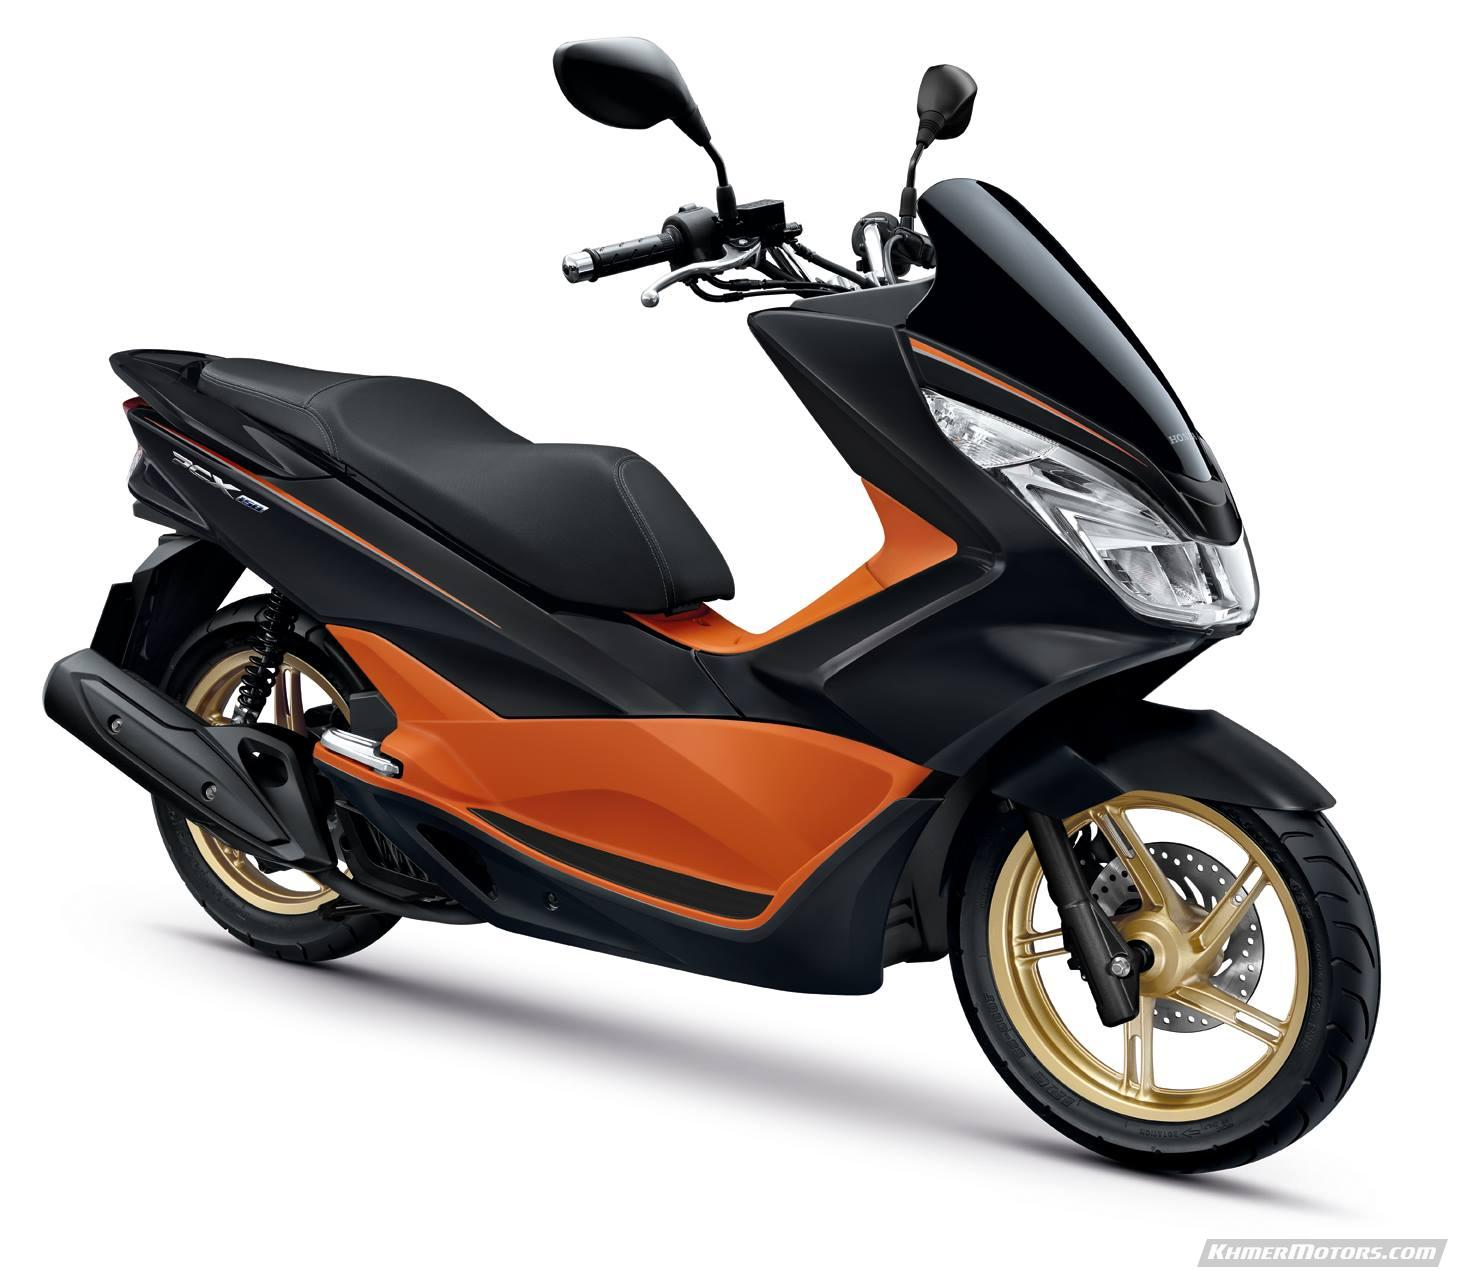 Honda PCX150 2017 [Price updated] - Khmer Motors